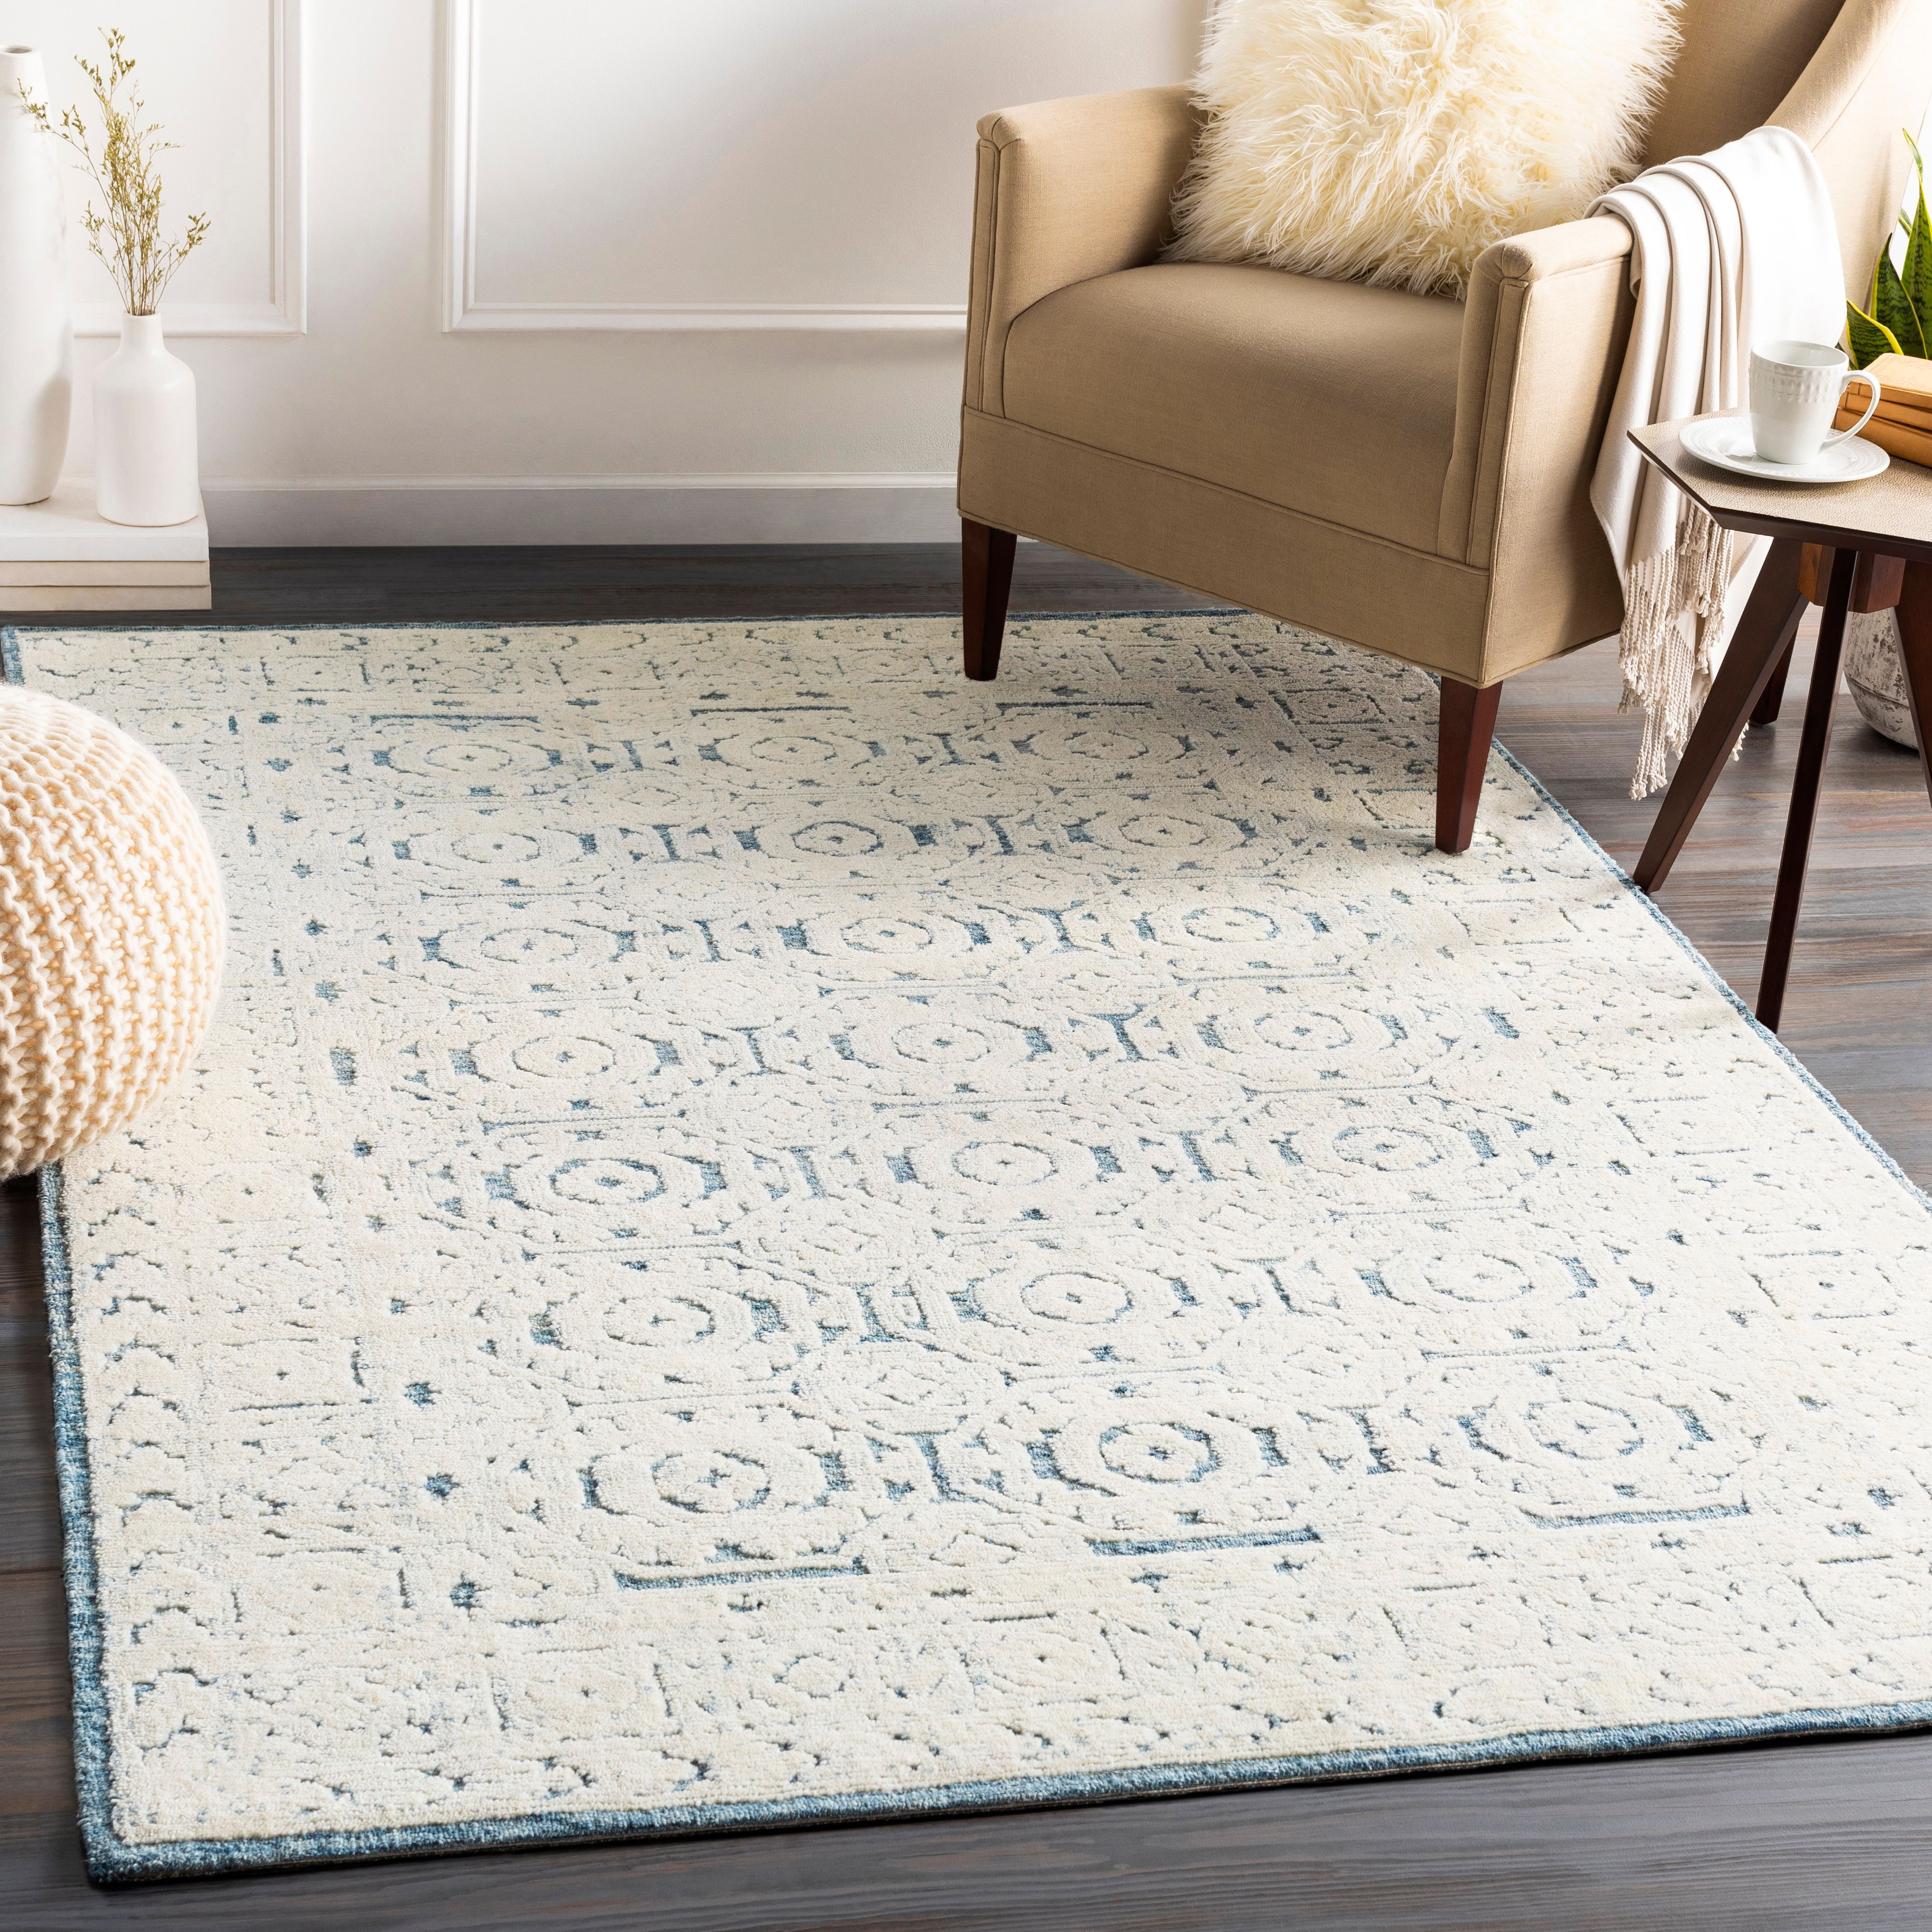 Home Accent Lovetta 5 X 7 6 Area Rug Ashley Furniture Homestore Farmhouse Area Rug Area Rugs Rugs 5 by 7 area rugs